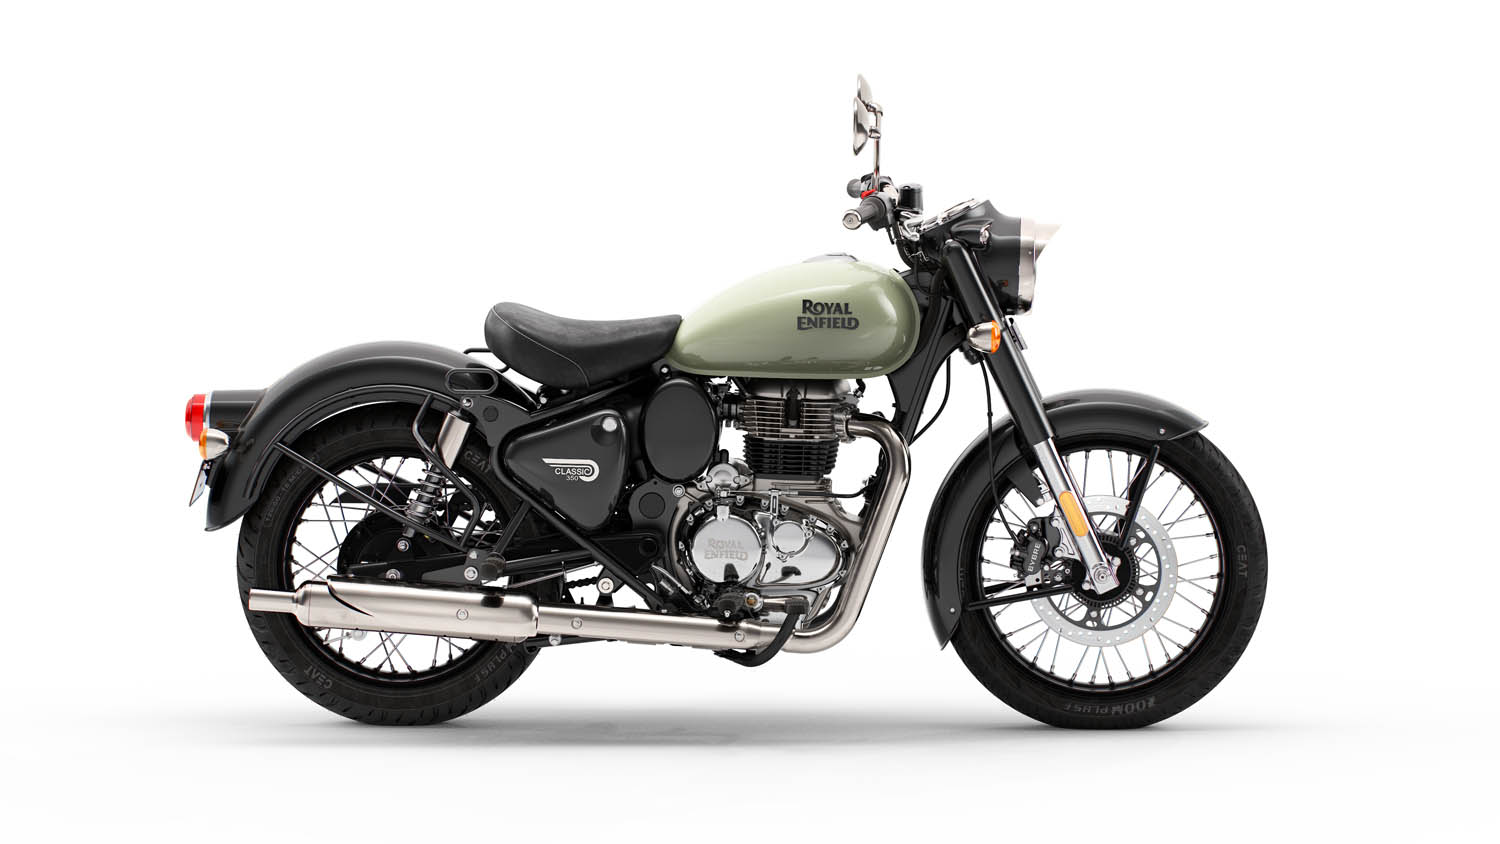 2022 Royal Enfield Classic 350 review